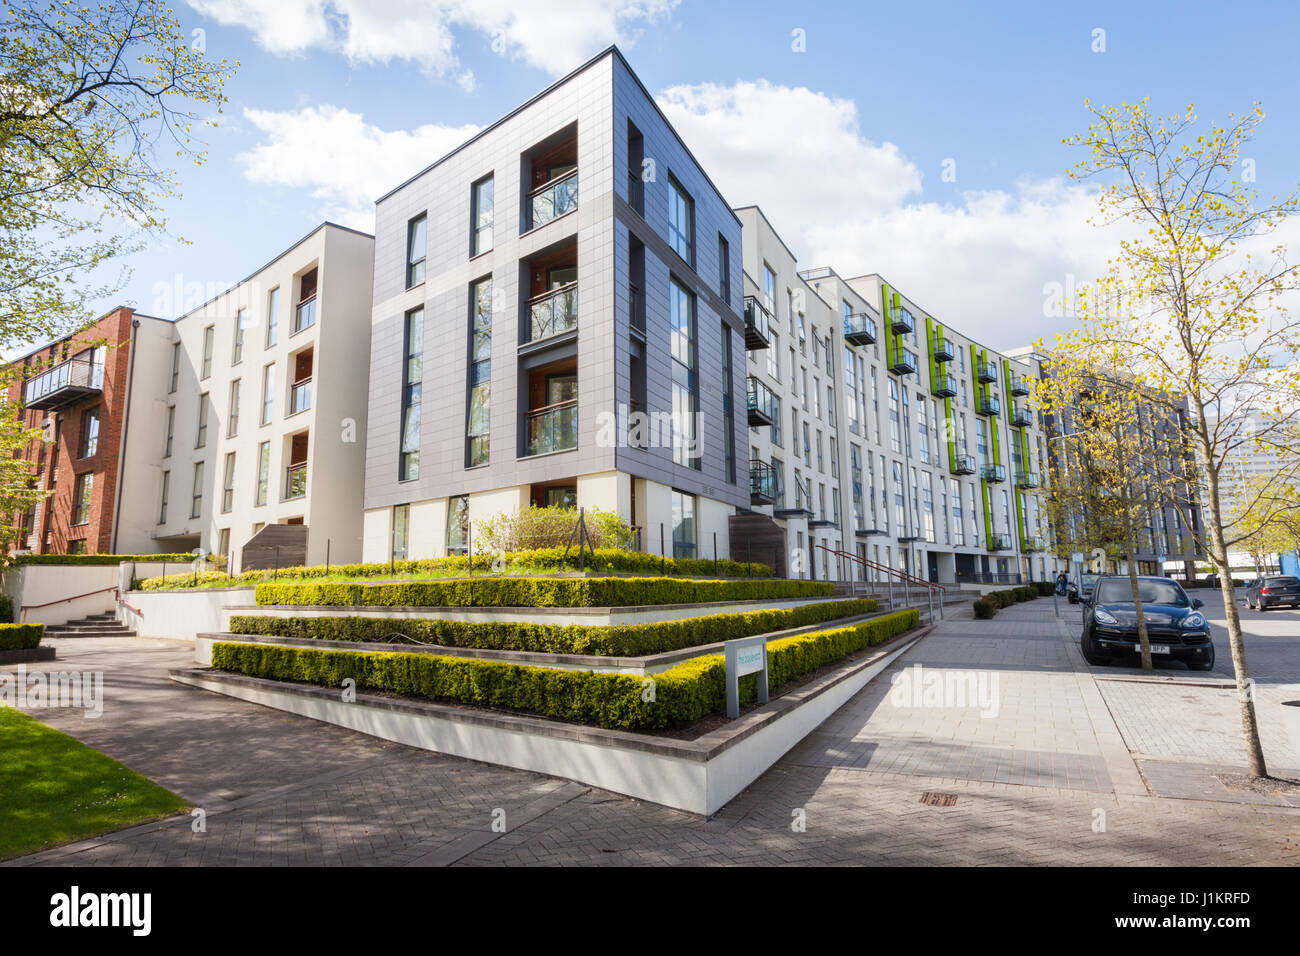 Modern Architecture Uk modern architecture apartment or flats development, edgbaston